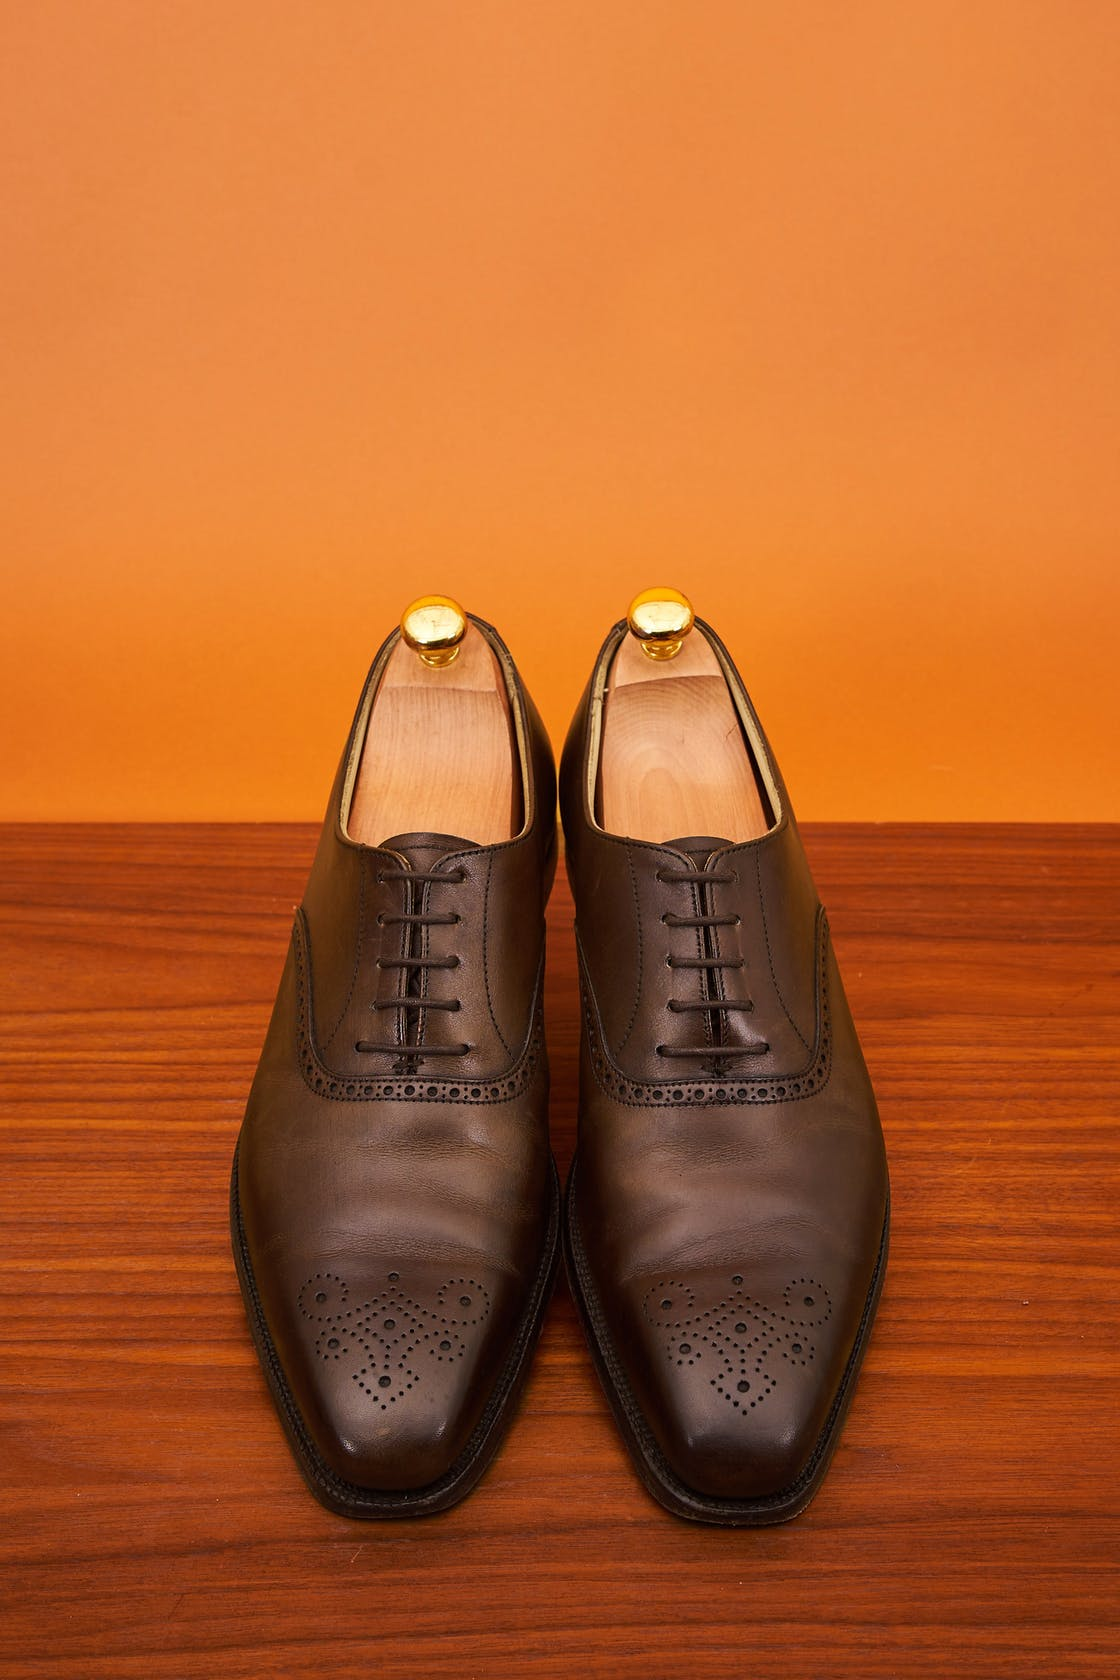 Crockett & Jones Edgware Brown Calf Oxford